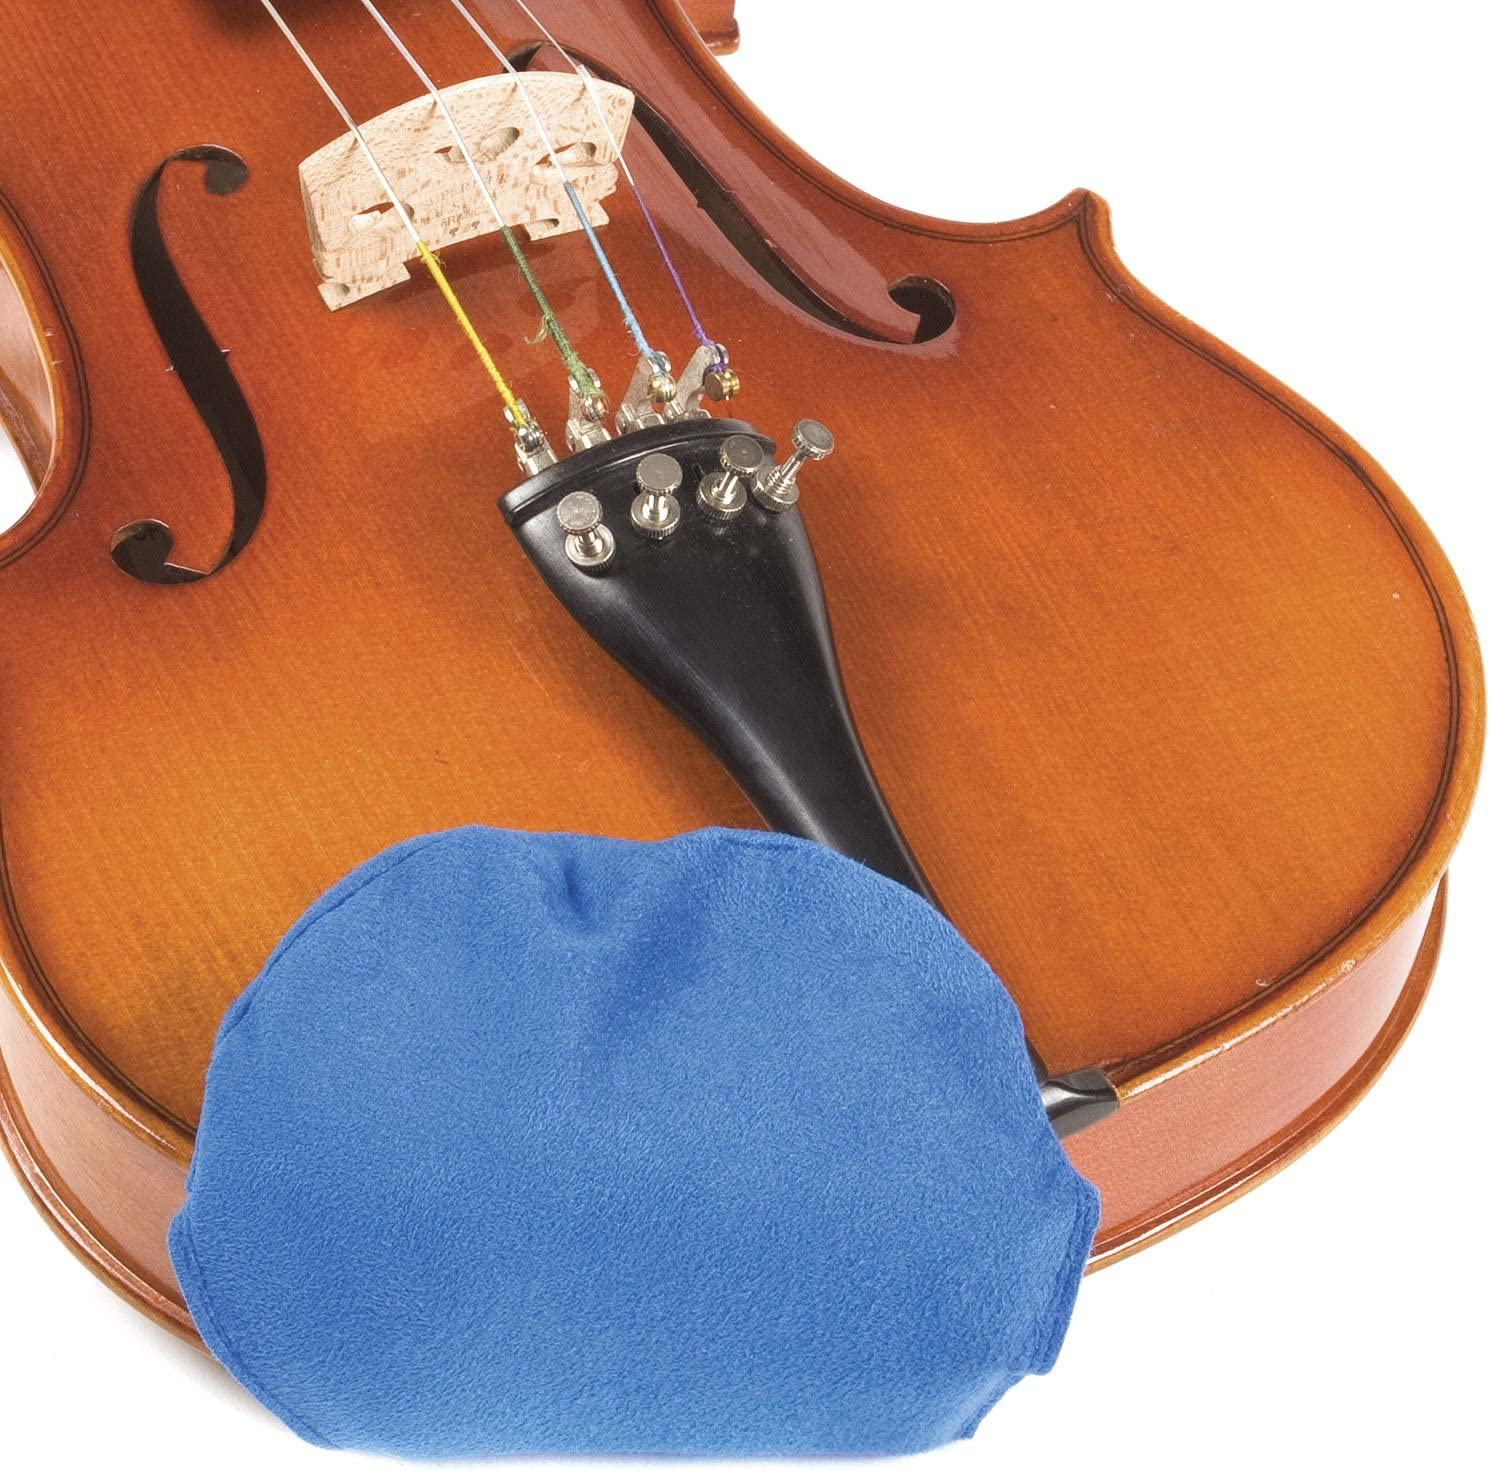 Chin Cozy Chinrest Cover: Medium for 1 Free Shipping New - quality assurance Blue Violin 4 2-4